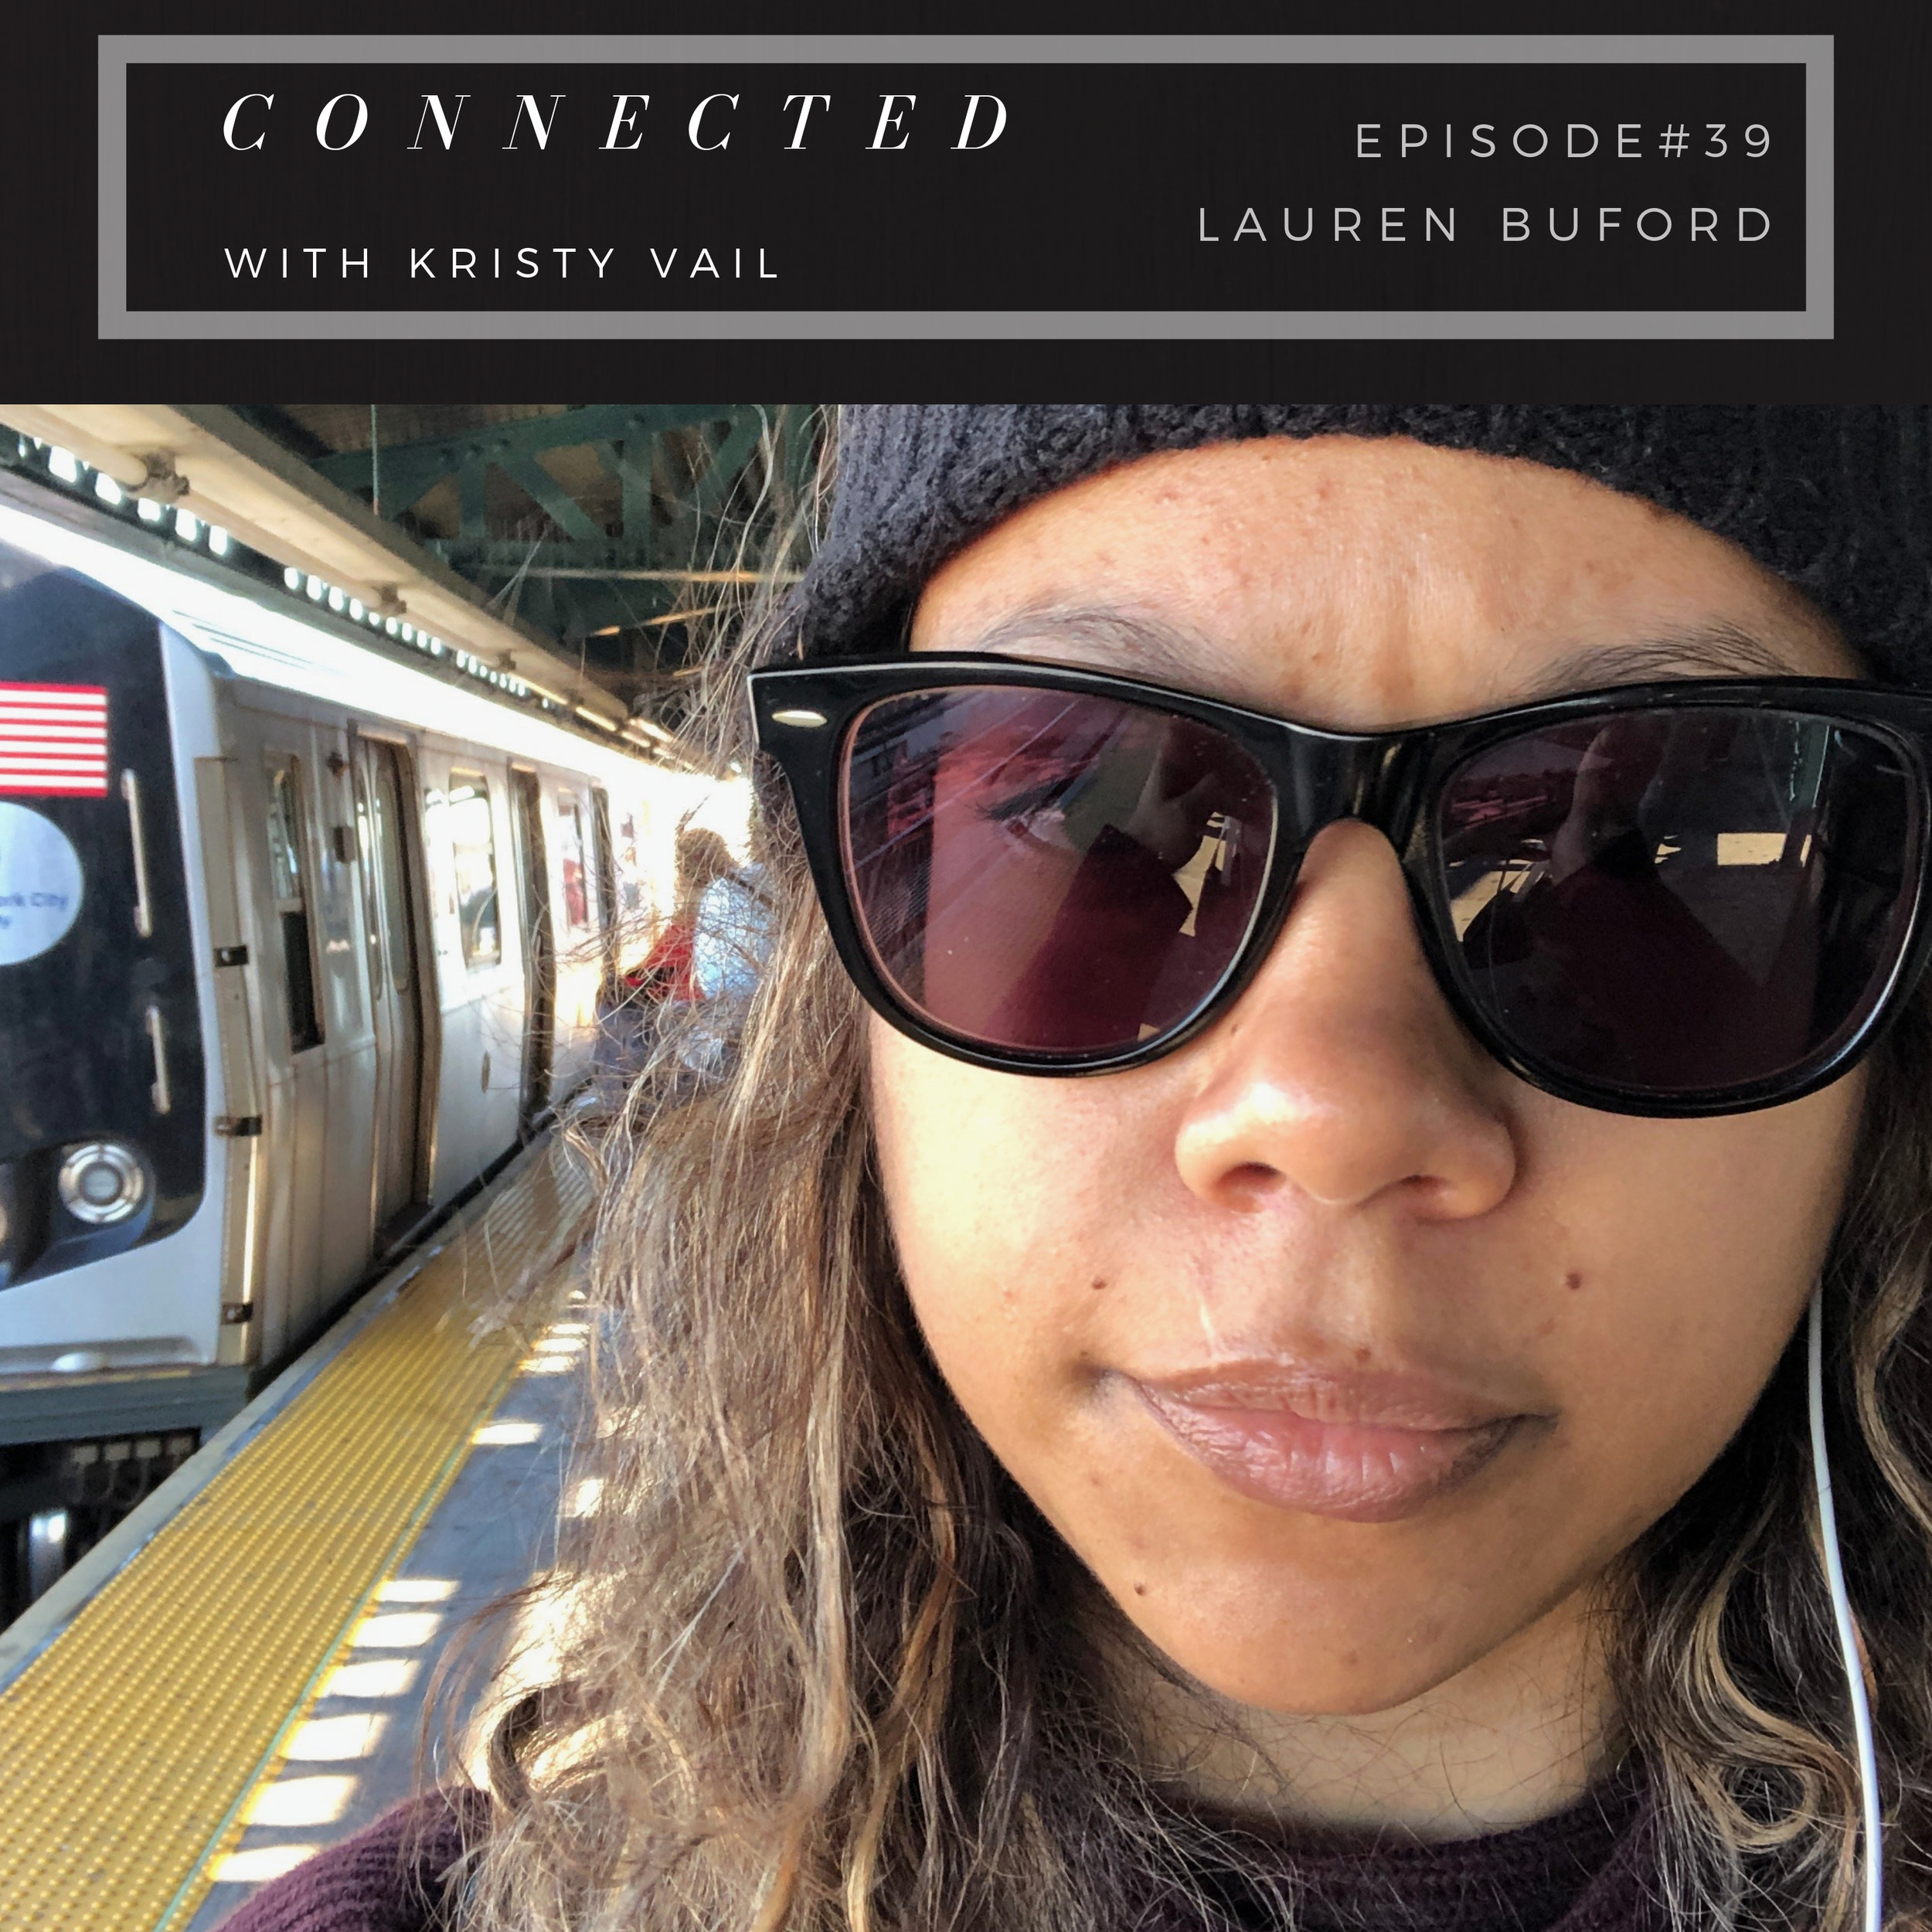 Listen to Lauren's experience here! - Lauren shares her experience in coaching how and its transformed her life. She describes the heaviness she felt before learning tools to feel and navigate her emotions. Lauren now lives everyday with more joy + lightness. She confidently travels alone, uses her voice and asks for what she wants + connects deeper with those who truly see her value! Her transformation will inspire you to leap outside your comfort zone + live bigger than you ever imagined possible!